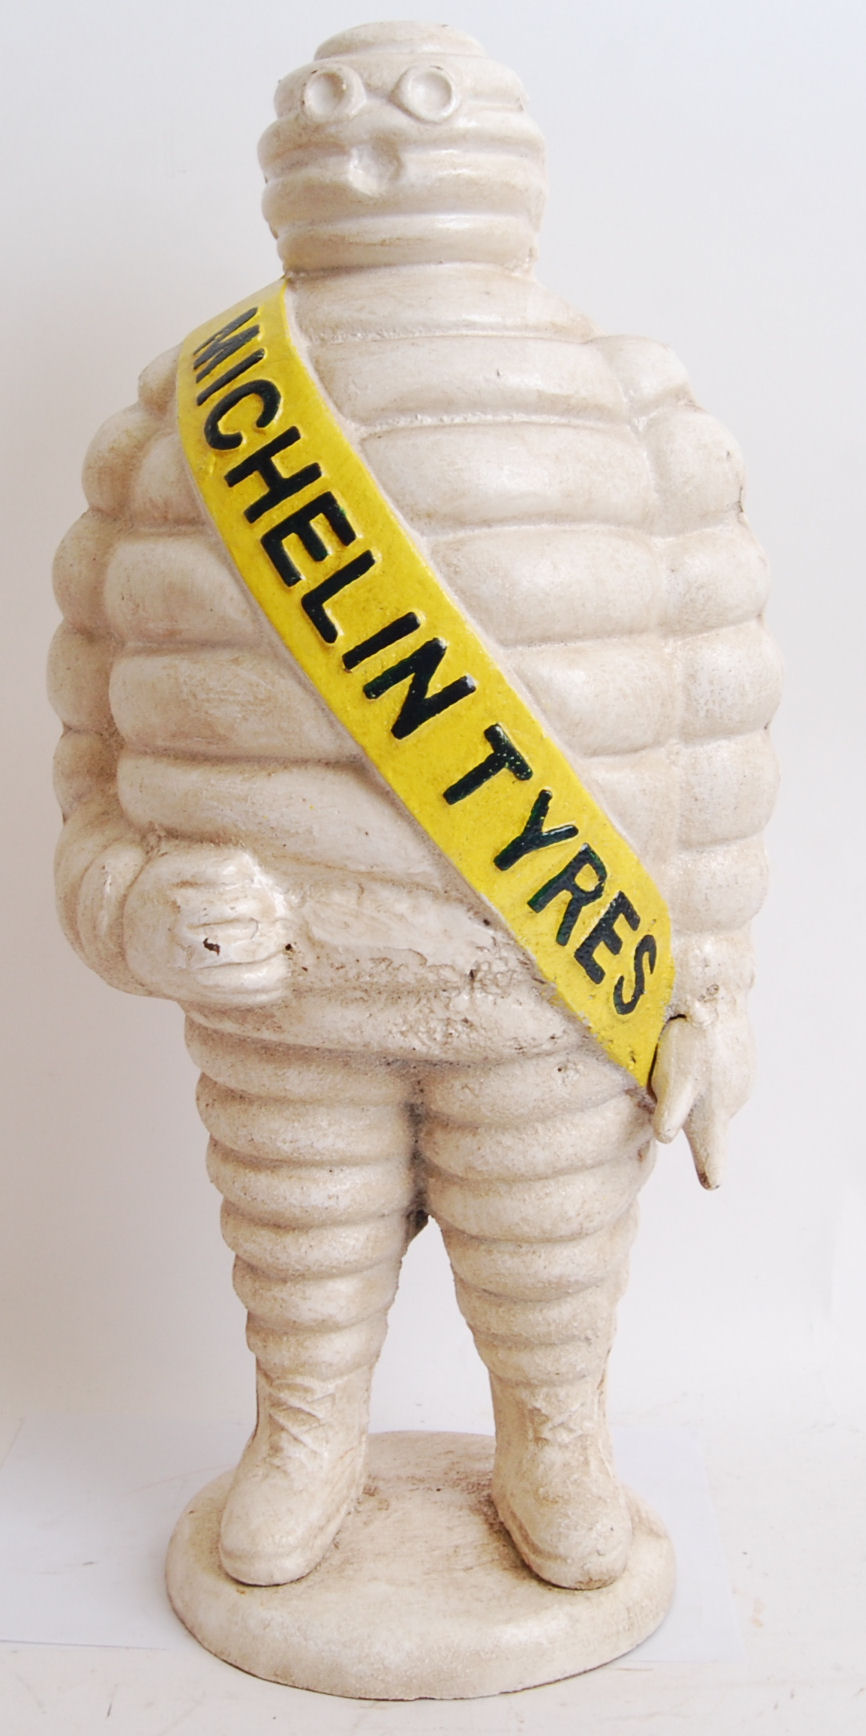 Lot 120 - MICHELIN MAN ADVERTISING FIGURE